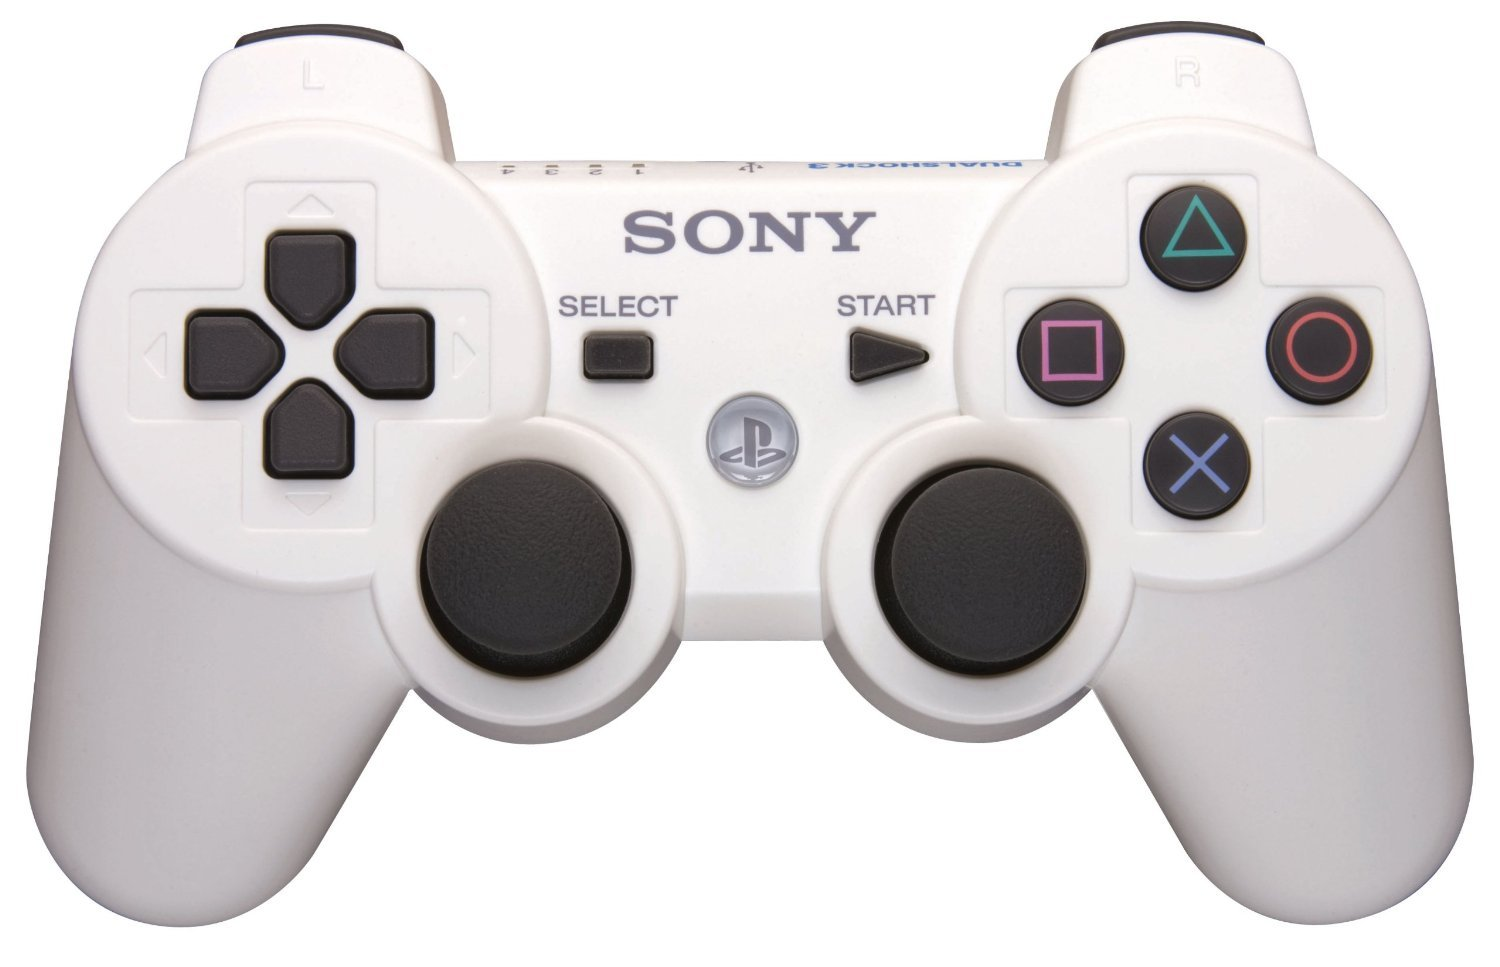 ps3controller ps3 wireless controller dualshock white classic. Black Bedroom Furniture Sets. Home Design Ideas